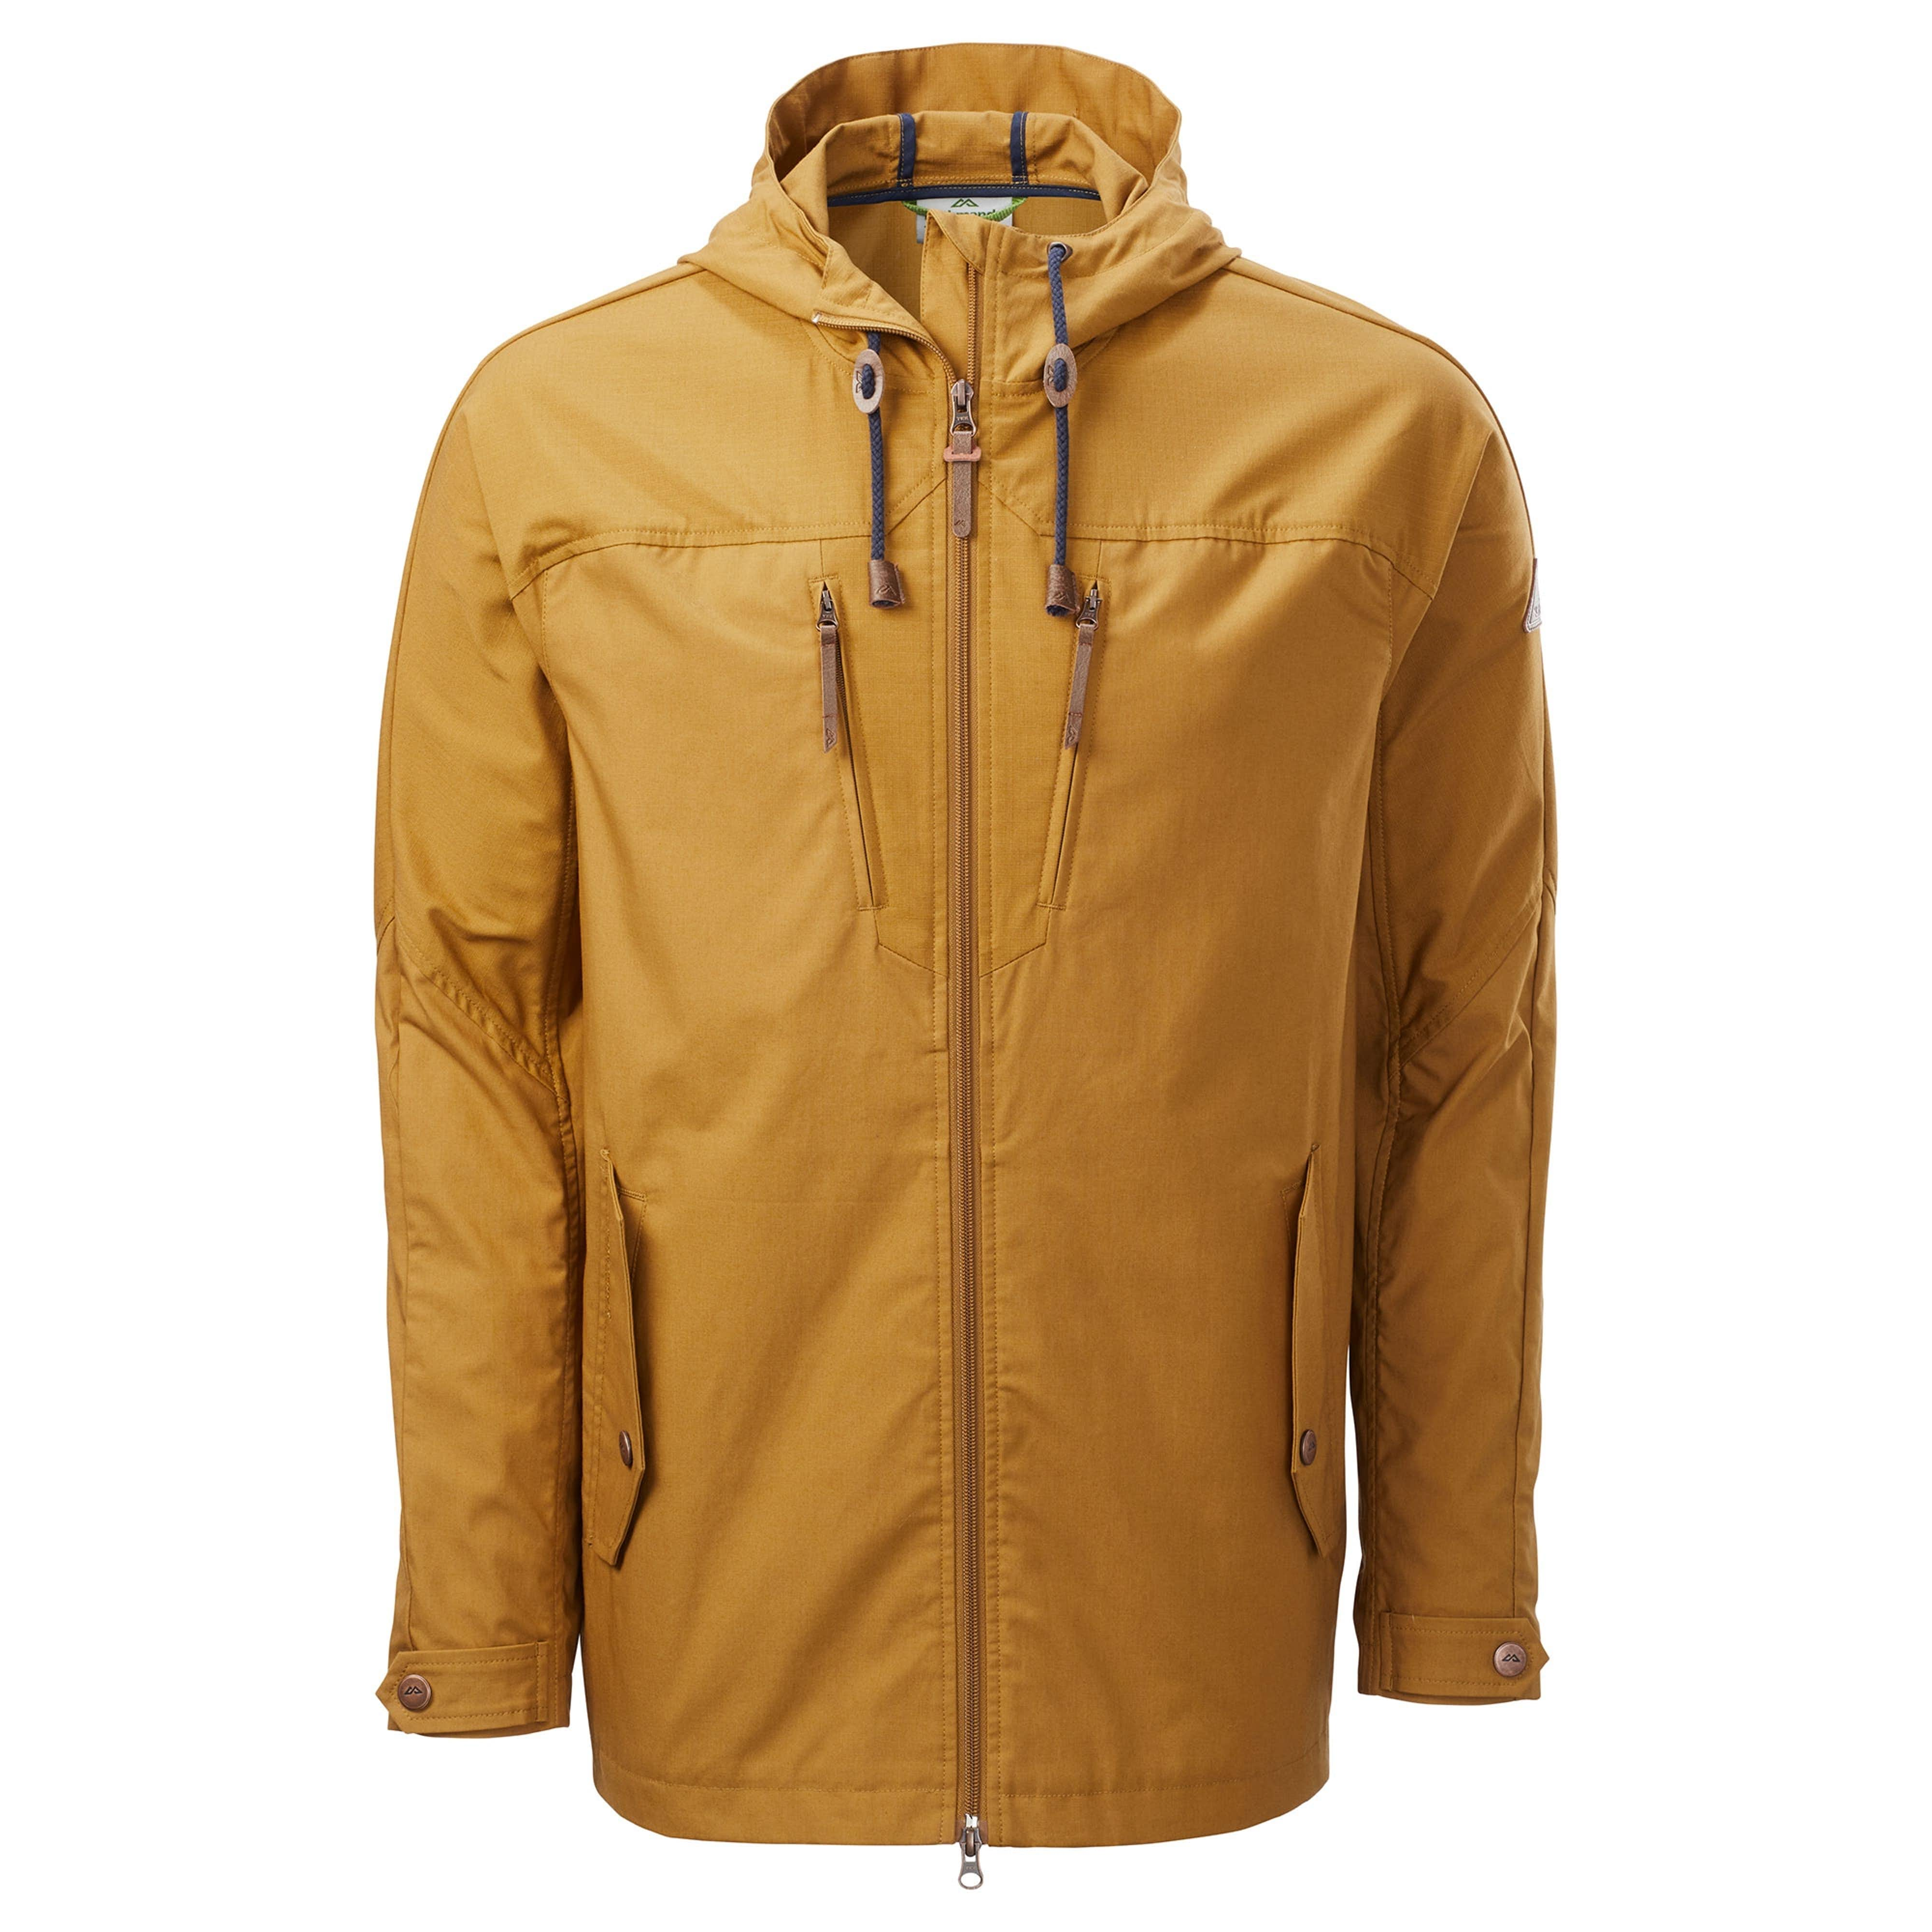 6593a5027 Kathmandu Outlet | Reduced for Clearance Travel & Adventure Gear